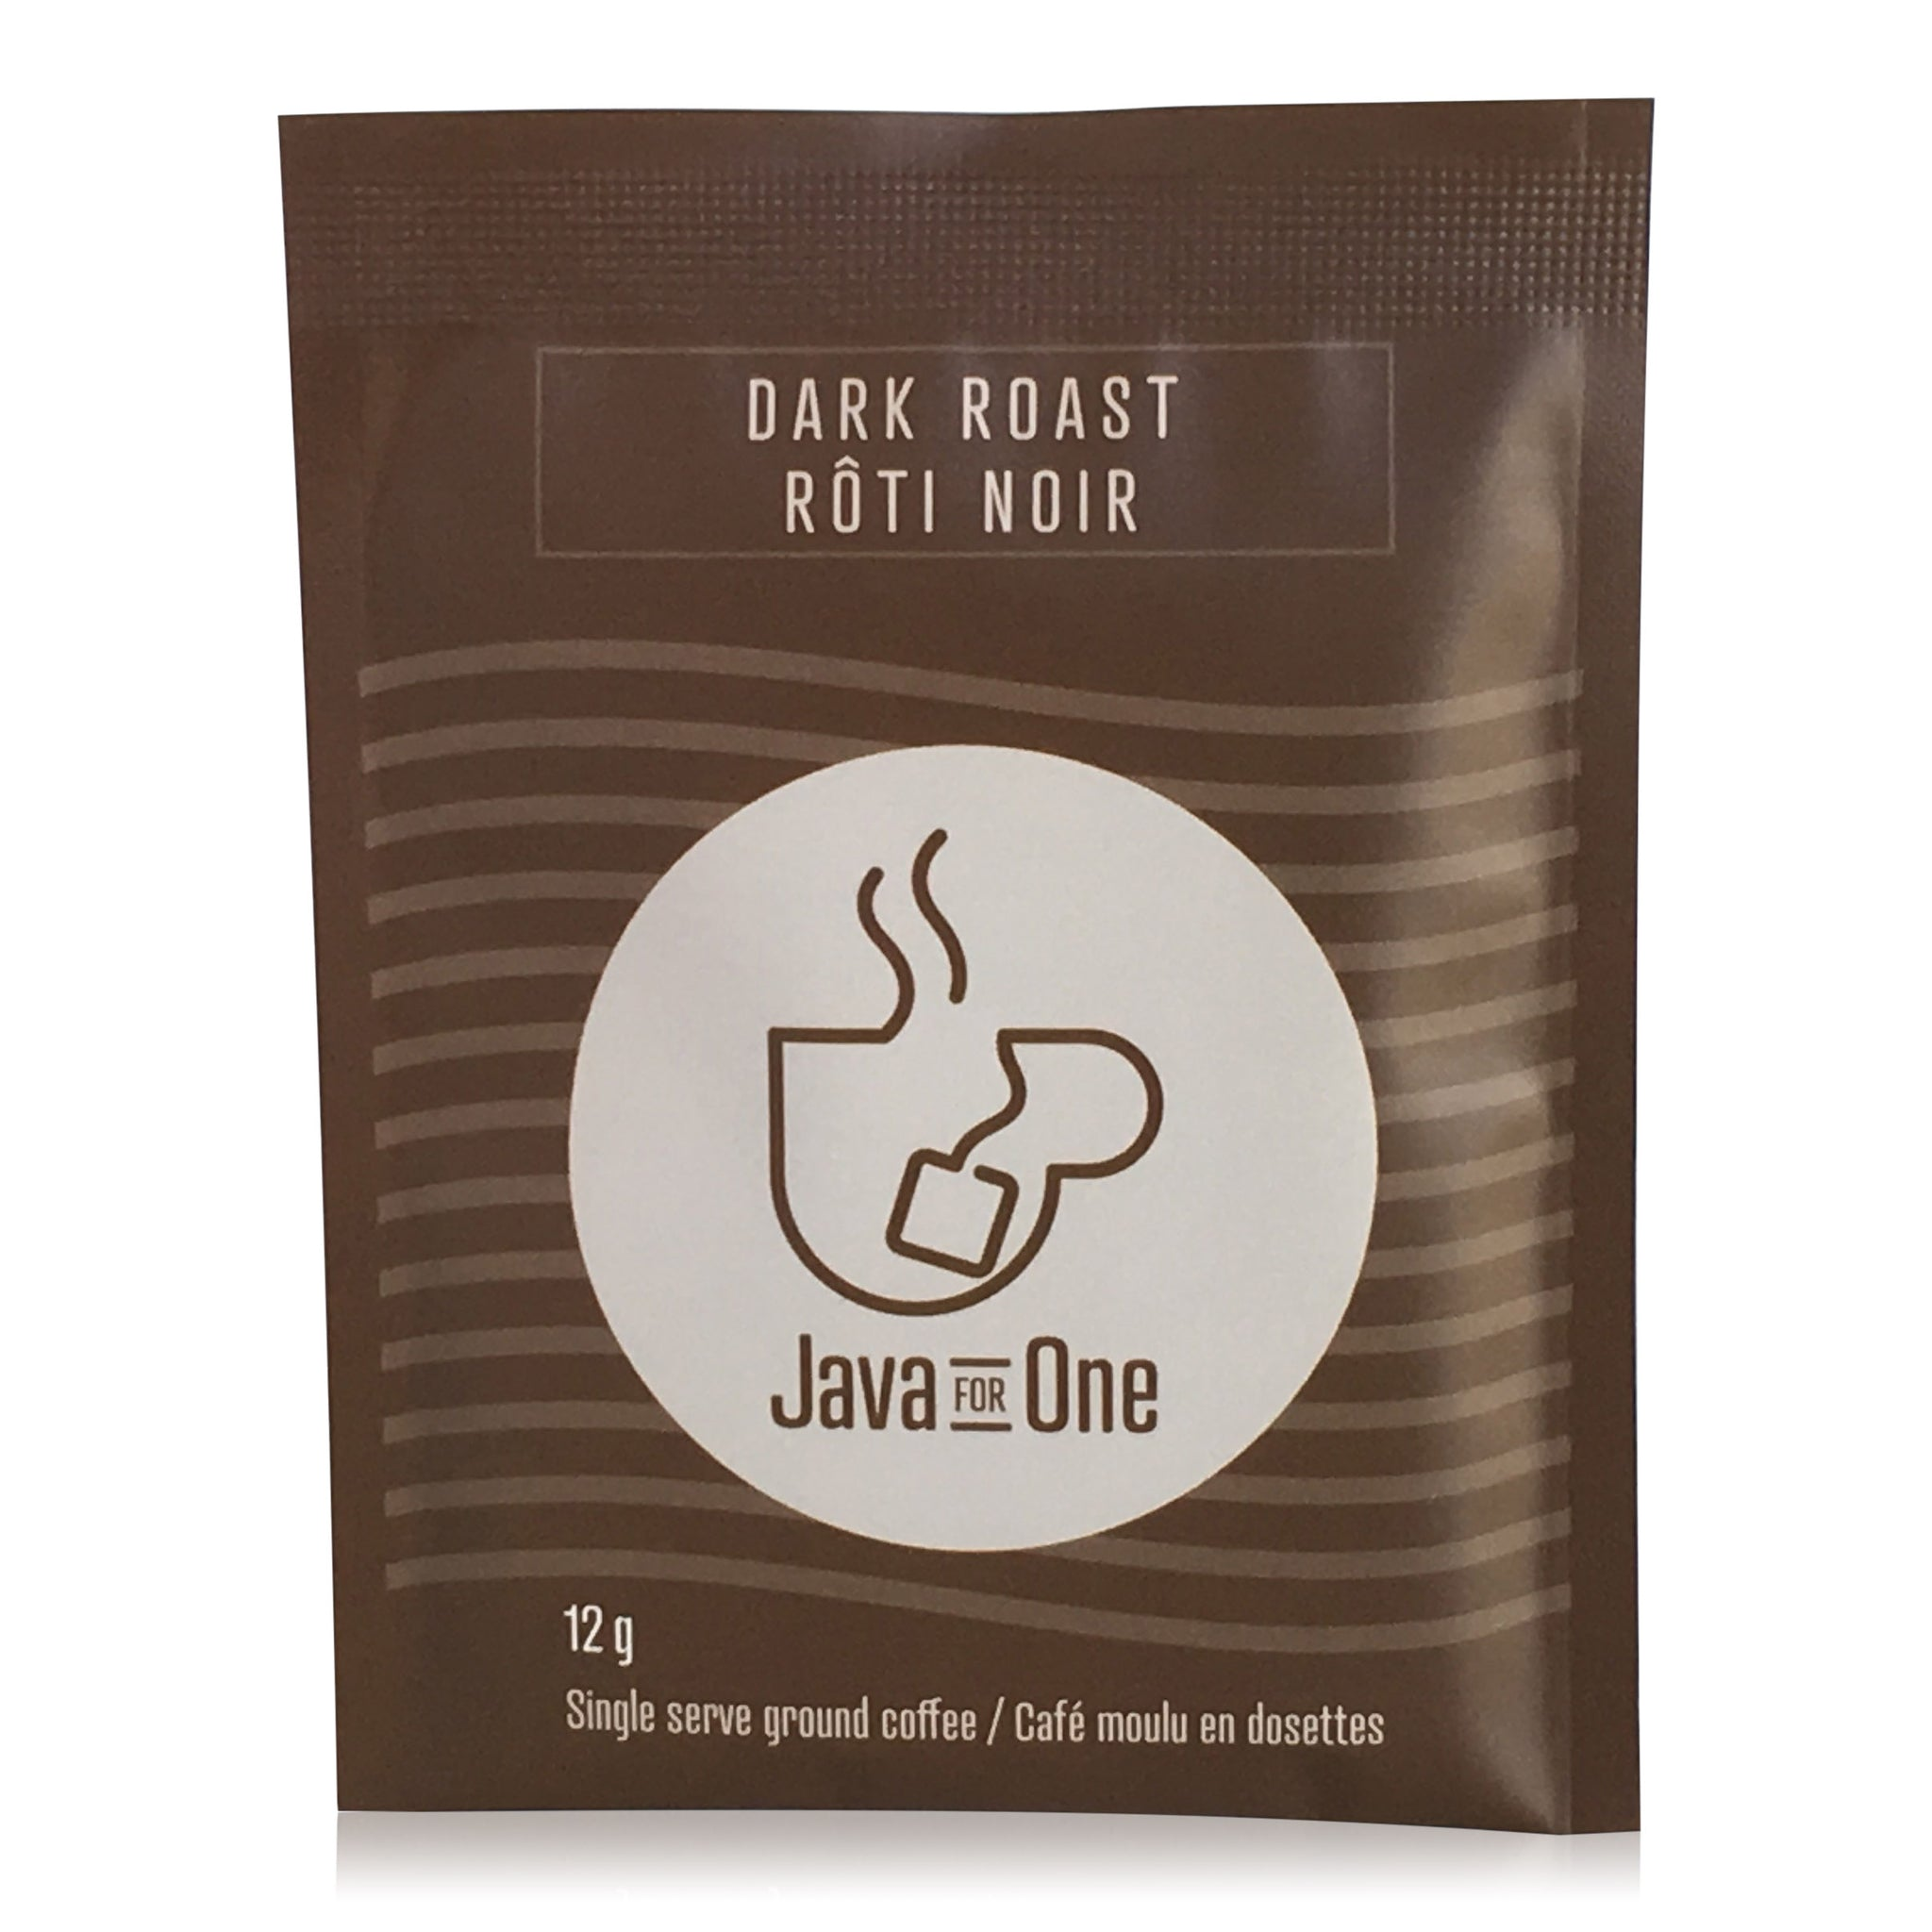 Dark Roast - Java For One